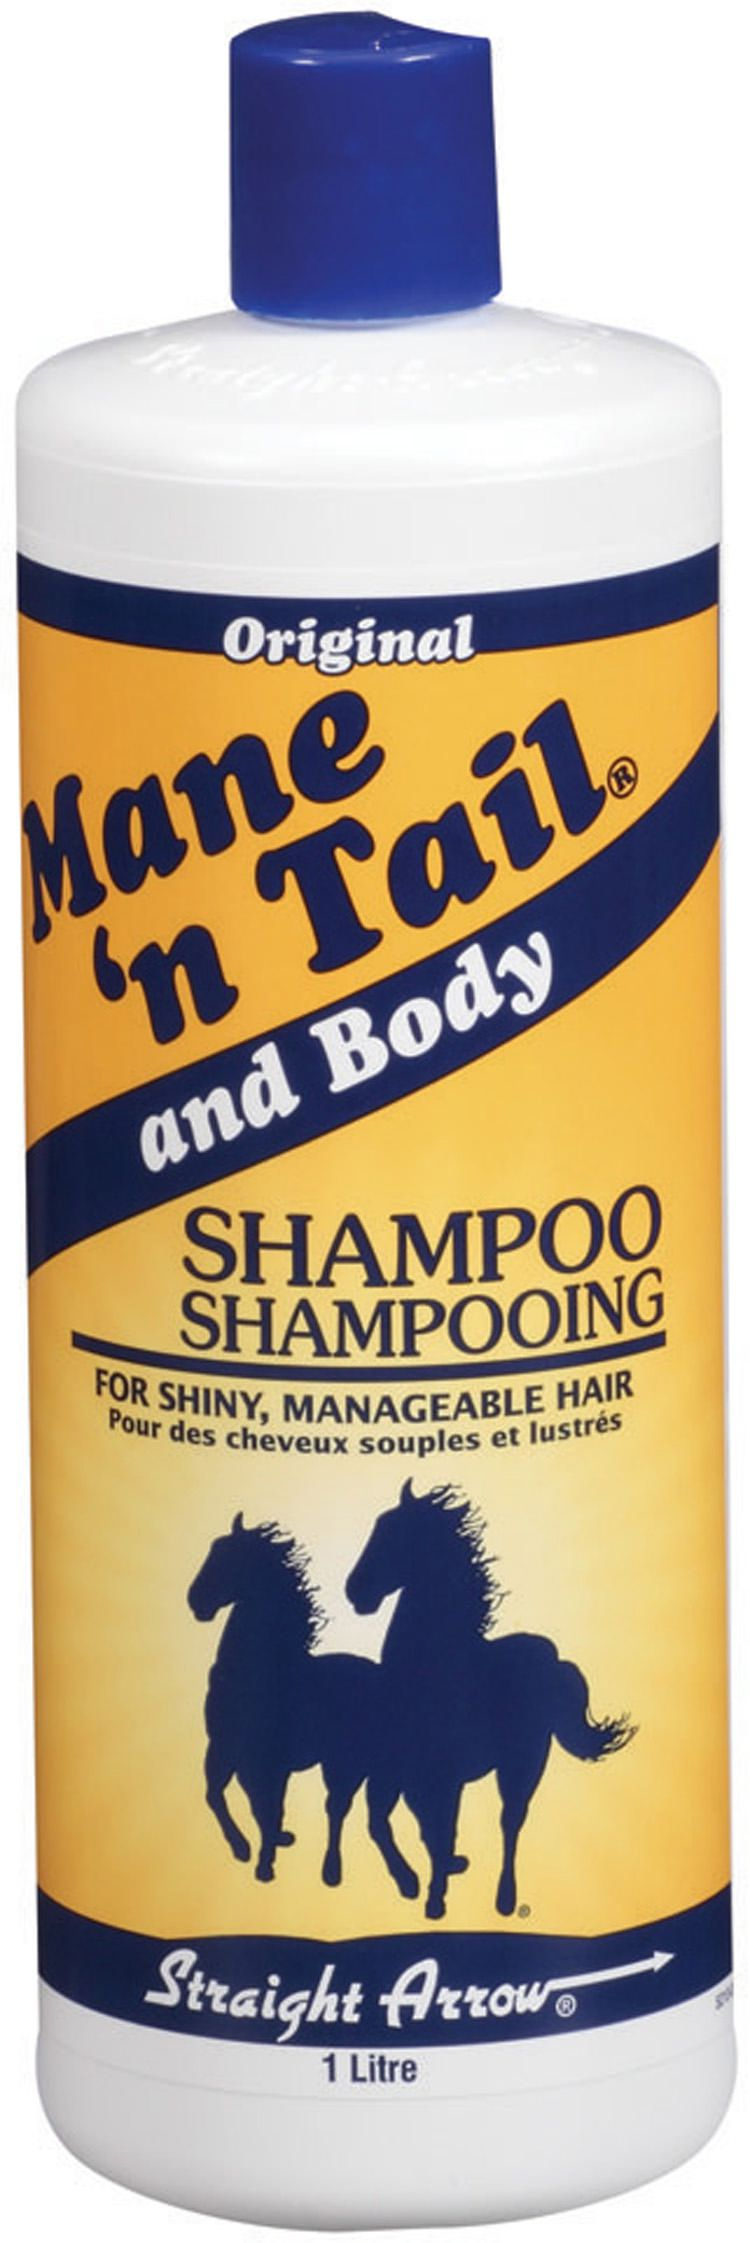 Mane n' Tail Shampoo and Conditioner 1 Litre